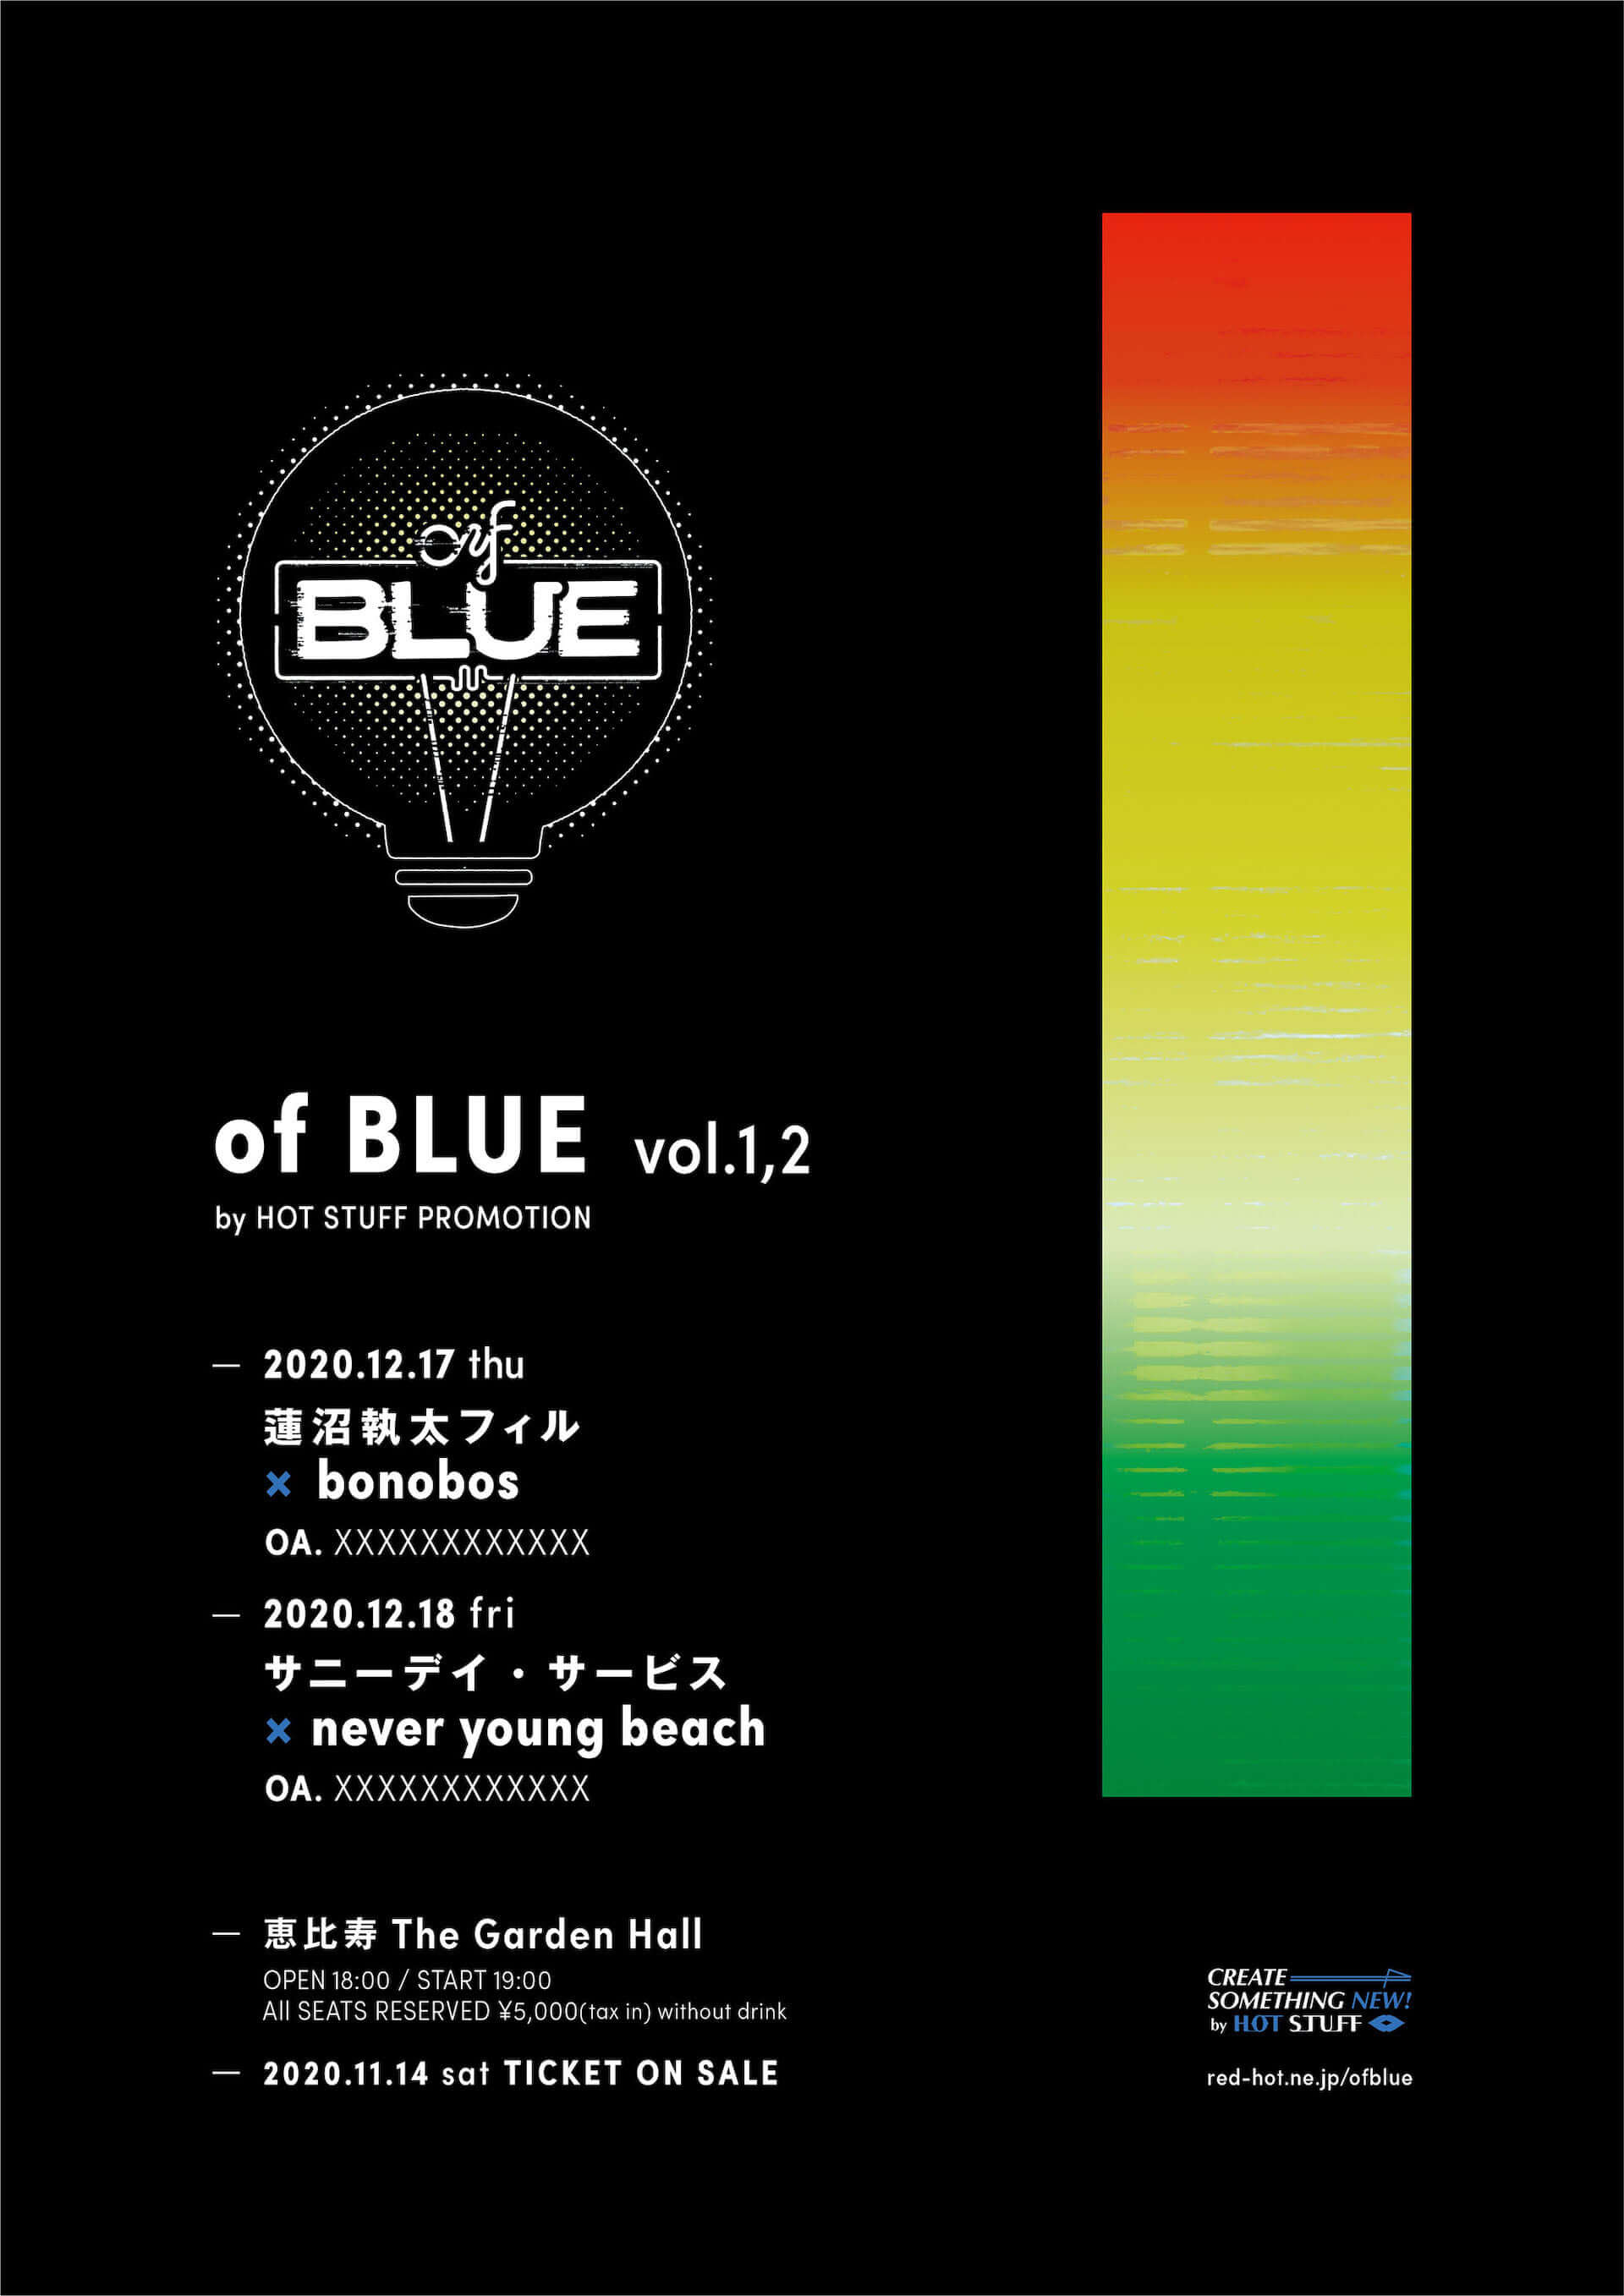 HOT STUFF PROMOTIONが新イベント<RED SPICE>&<of BLUE>を始動!never young beach、サニーデイ・サービス、羊文学らが出演 music201102_redspice-ofblue_9-1920x2715